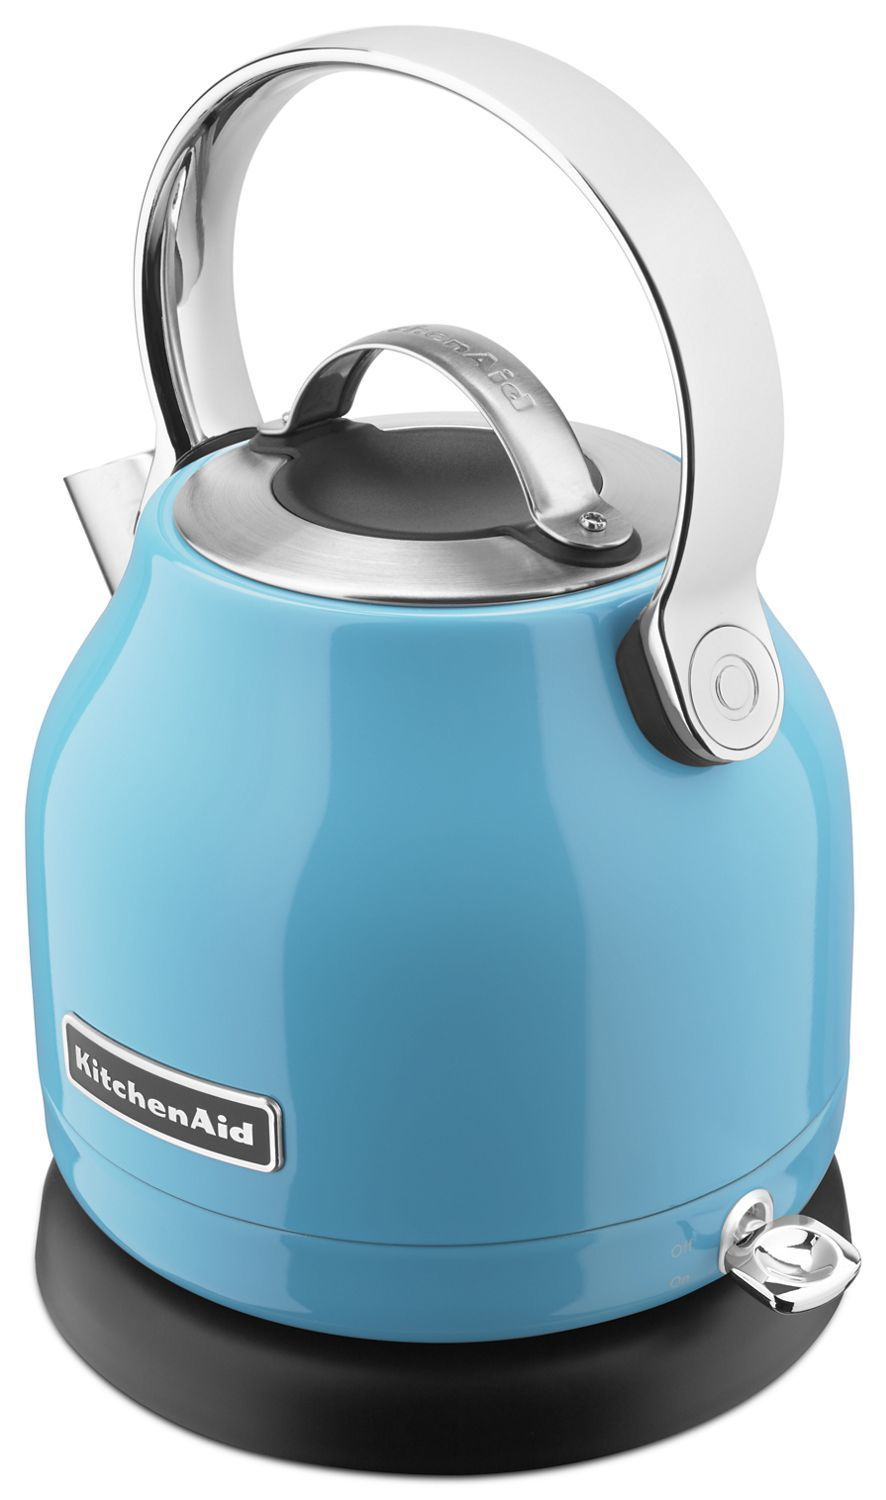 KEK1222CLKitchenaid 1.25 L Electric Kettle Crystal Blue ...